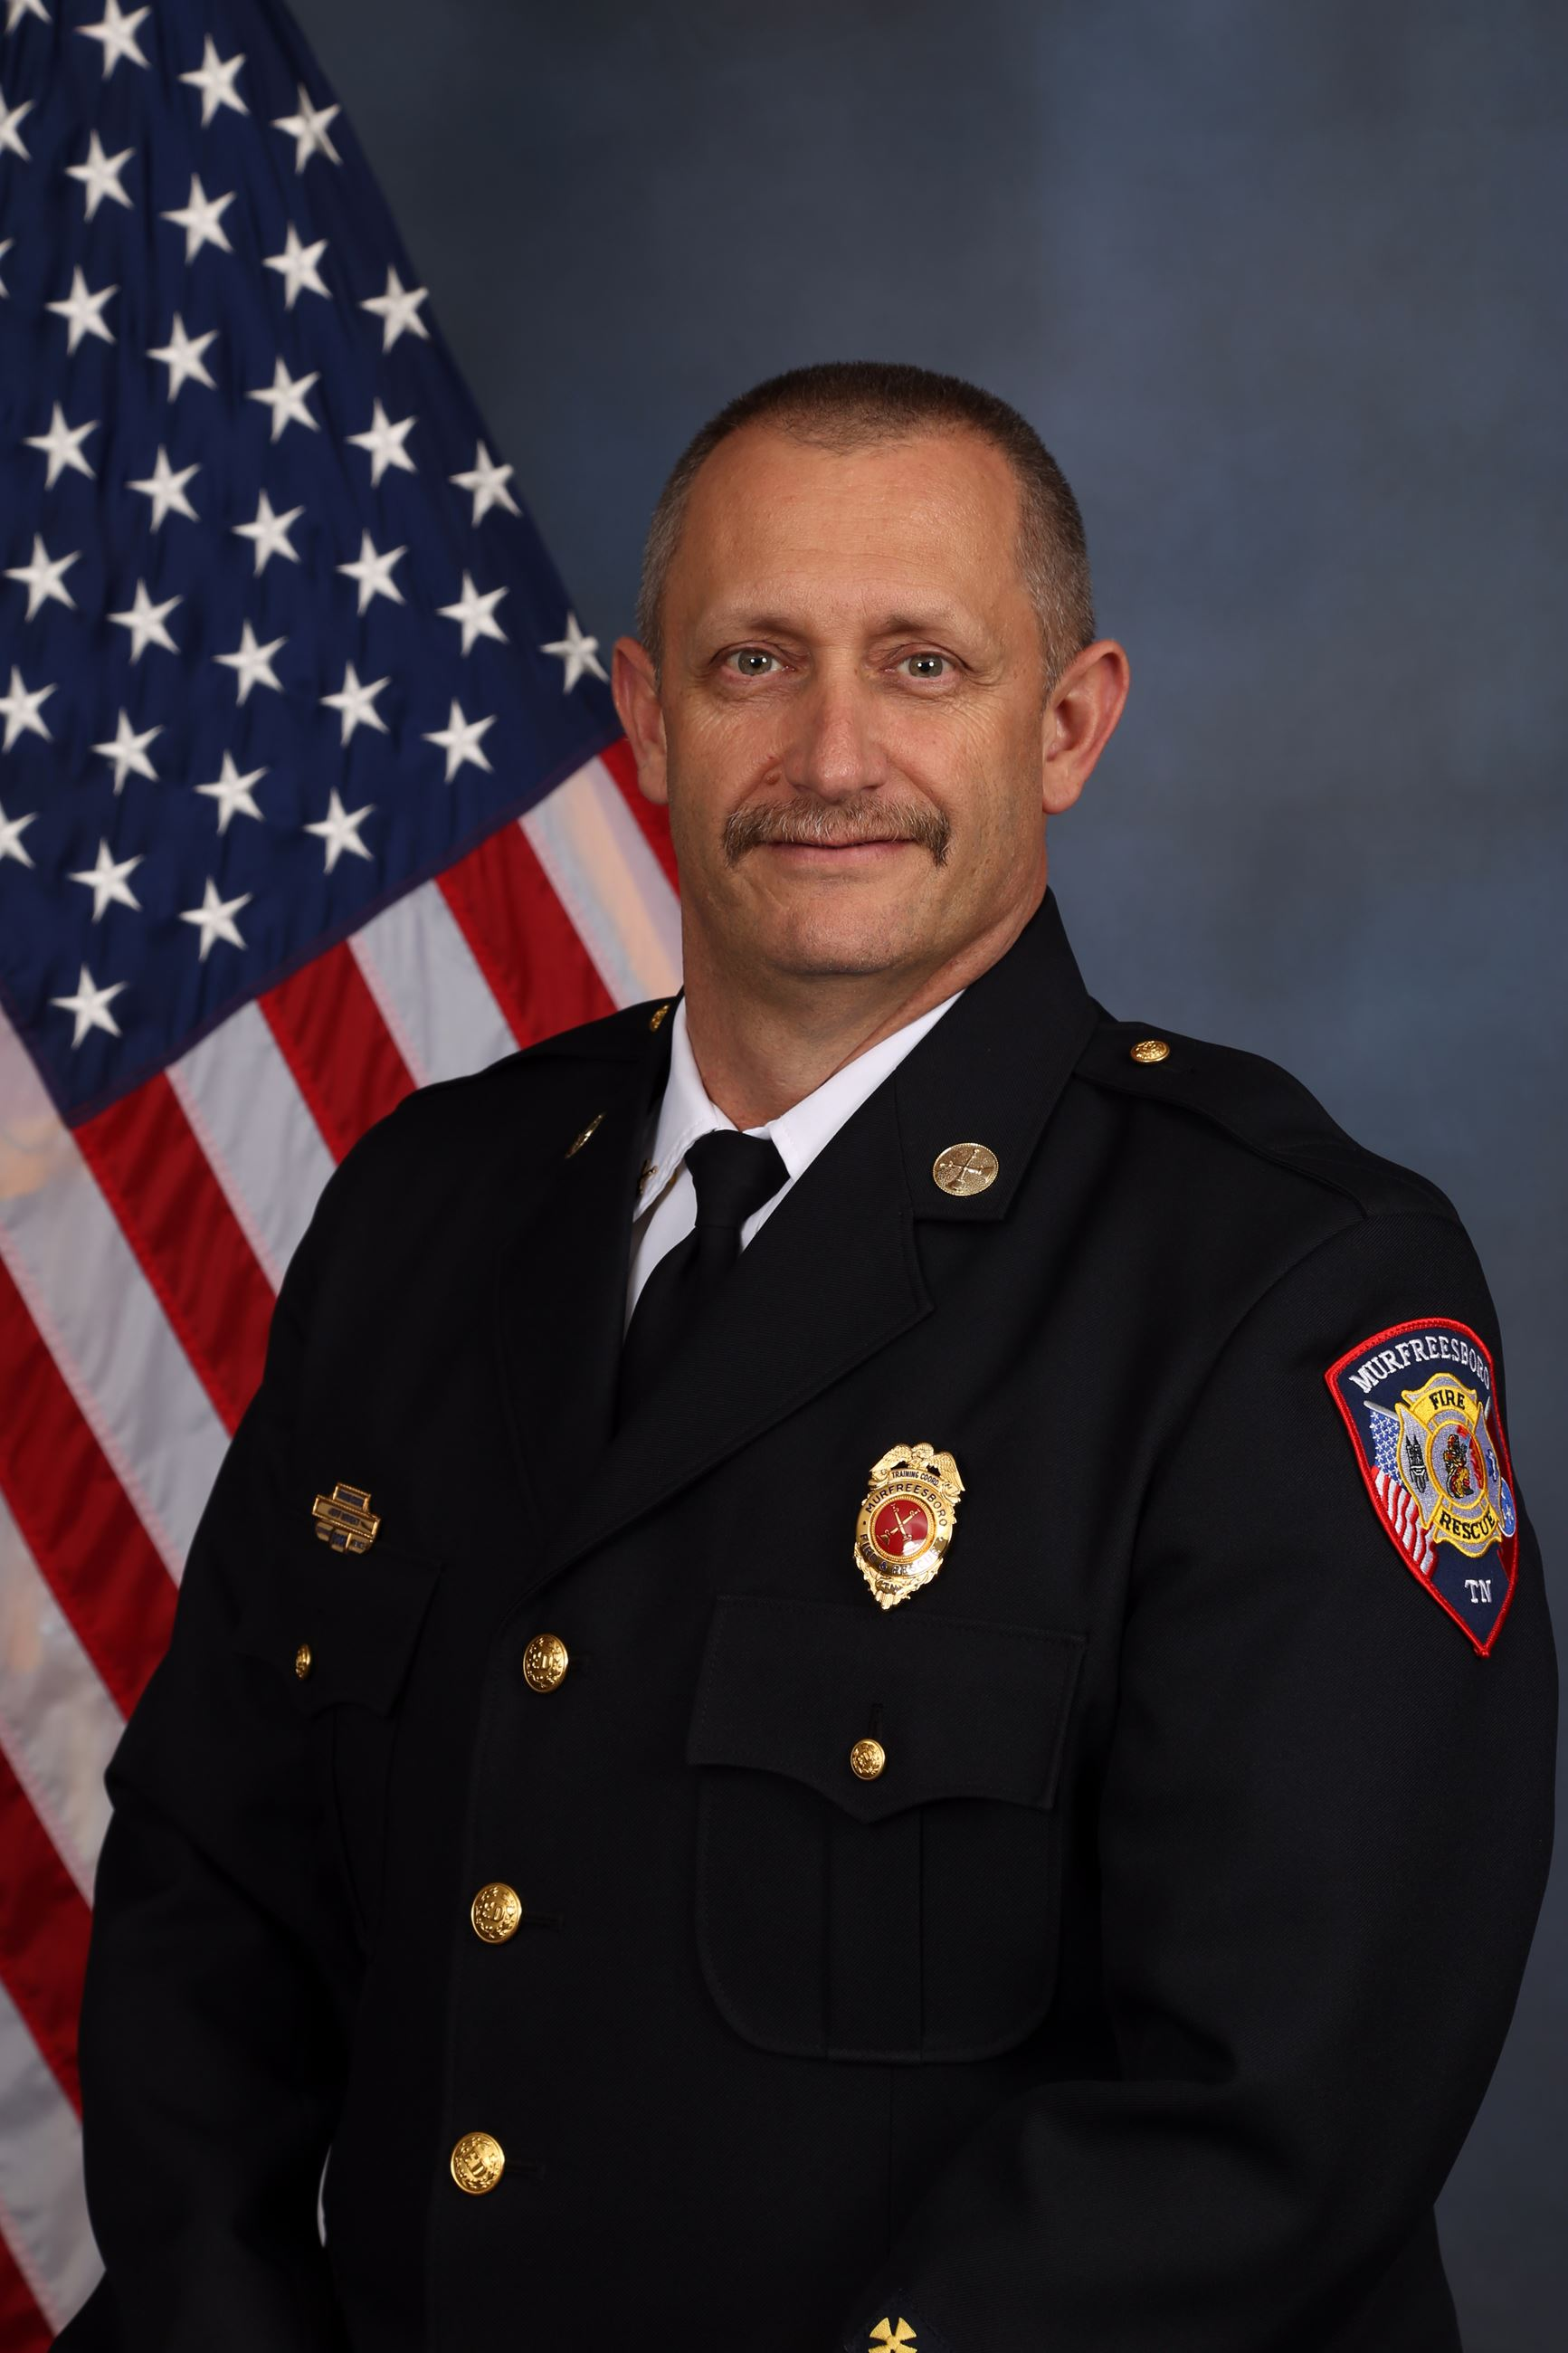 MFRD ASSISTANT CHIEF JEFFERY WRIGHT